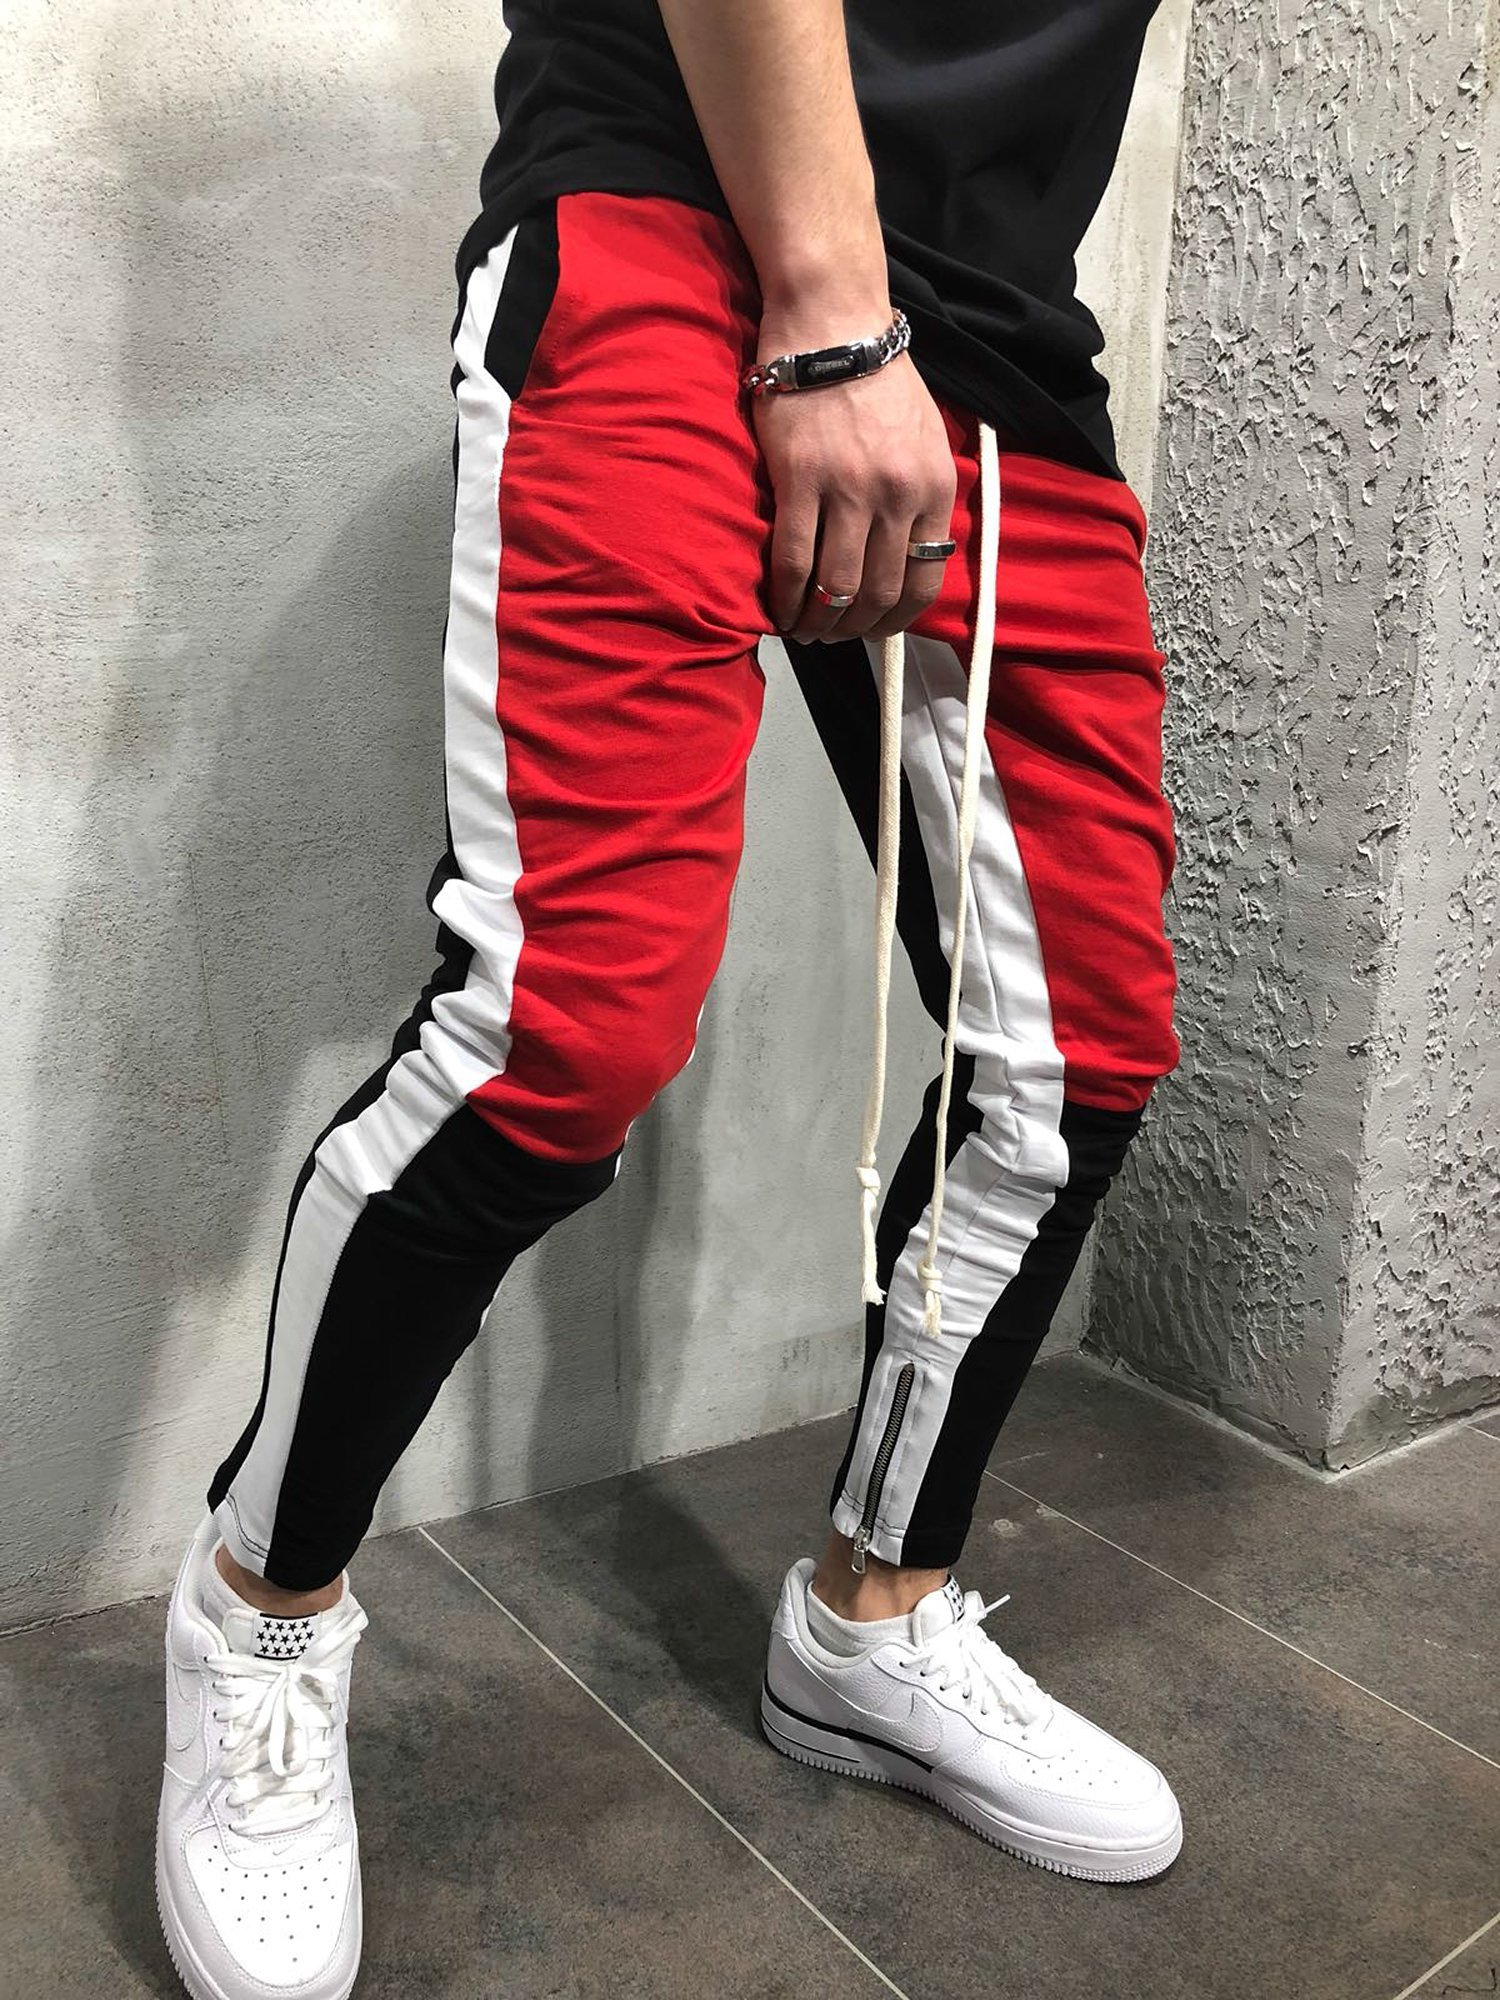 Men Slim Fit Casual Tricolor Sweatpants  MST9 – Online Shopping in ... 84afae3332